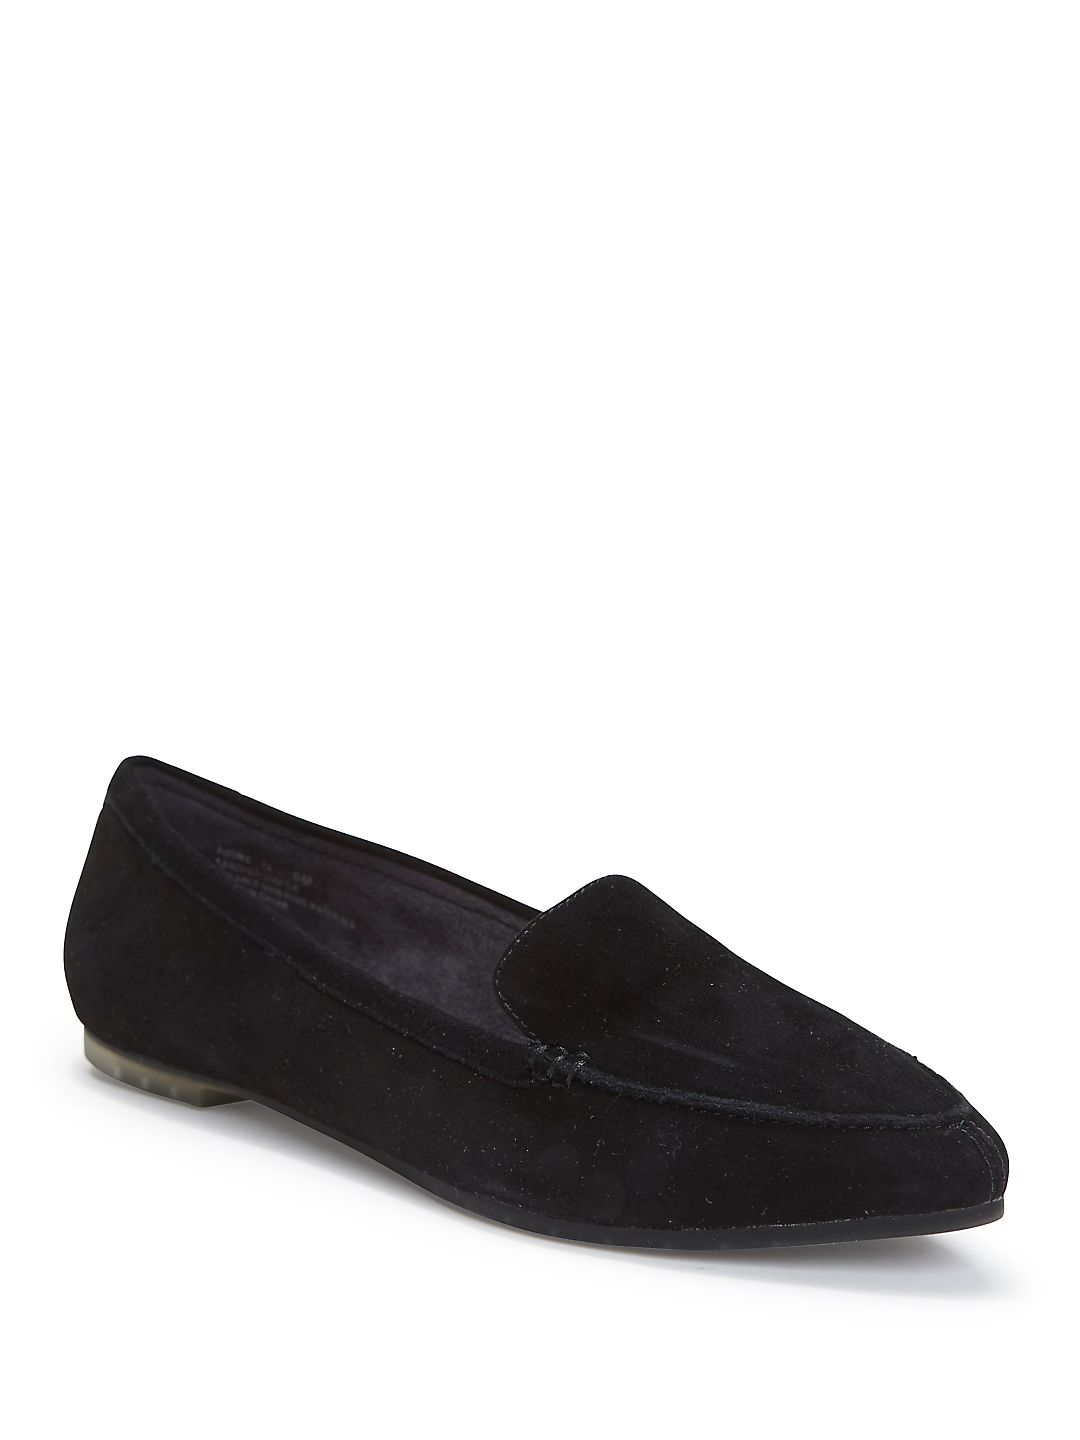 Audra Suede Loafers